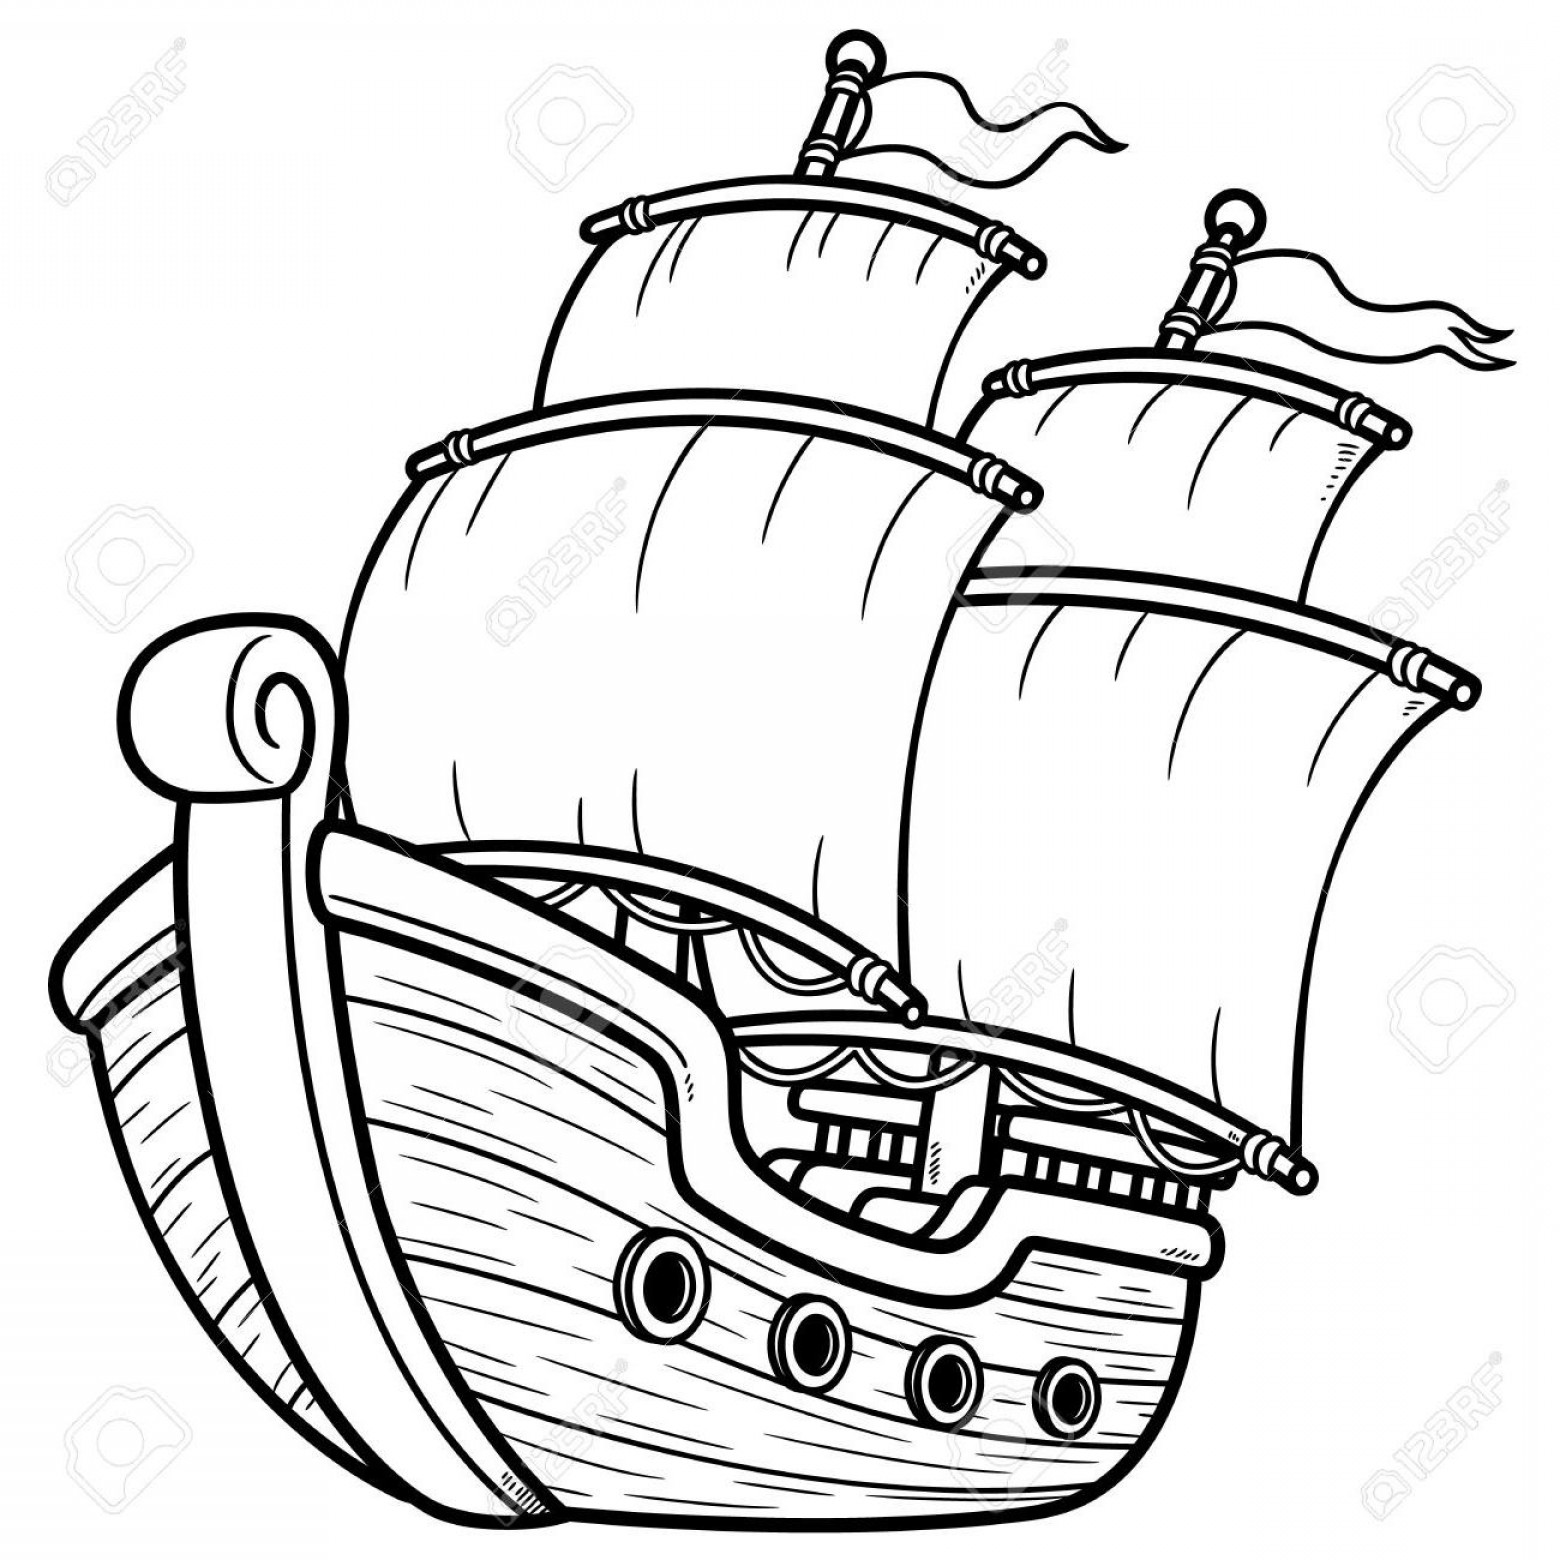 Boat Vector Art Graphics: Best Free Pirate Ship Line Art Vector Cdr